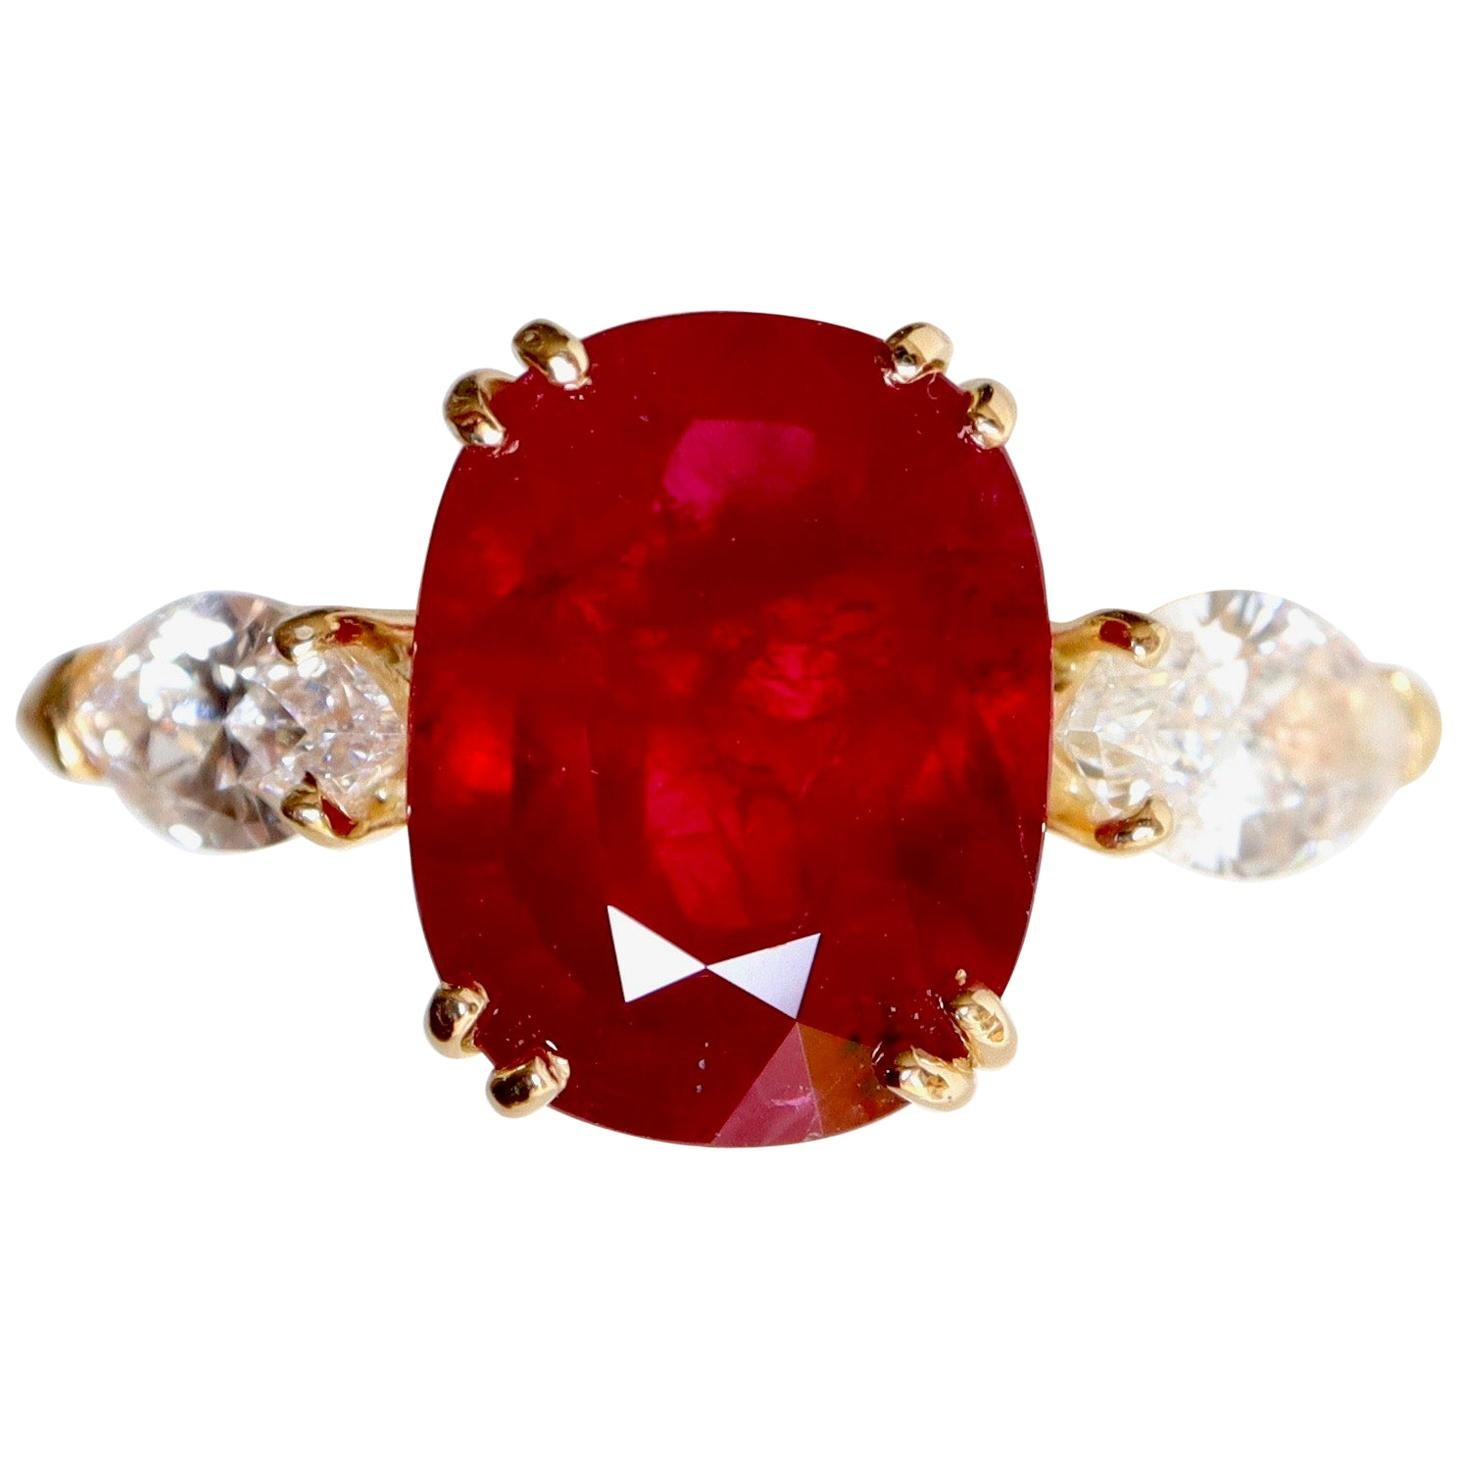 Ruby Ring in 18 Carat Yellow Gold Diamonds and Ruby 5.01 Carat